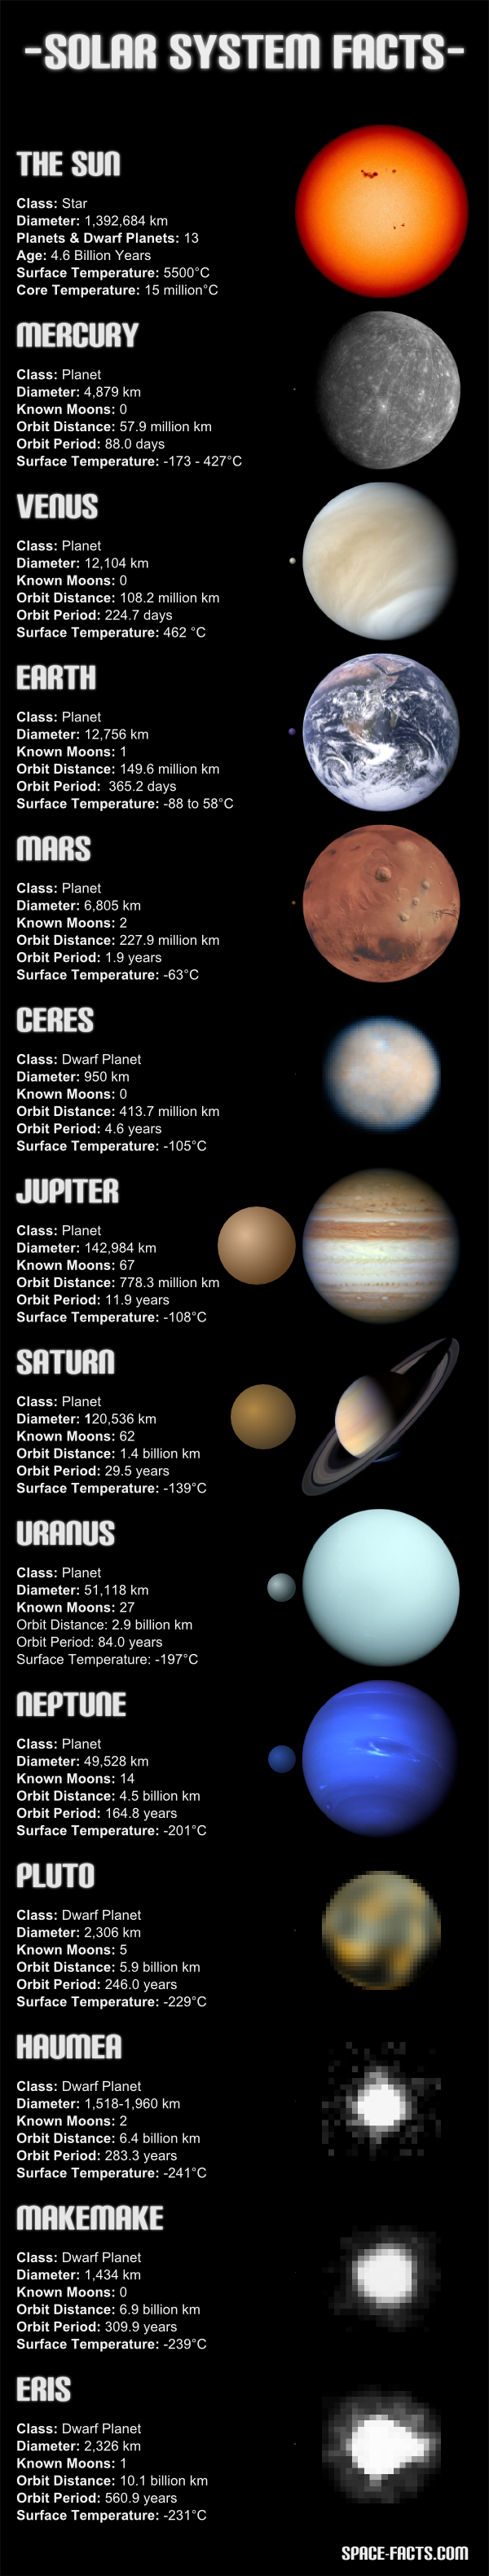 info about the solar system - photo #8